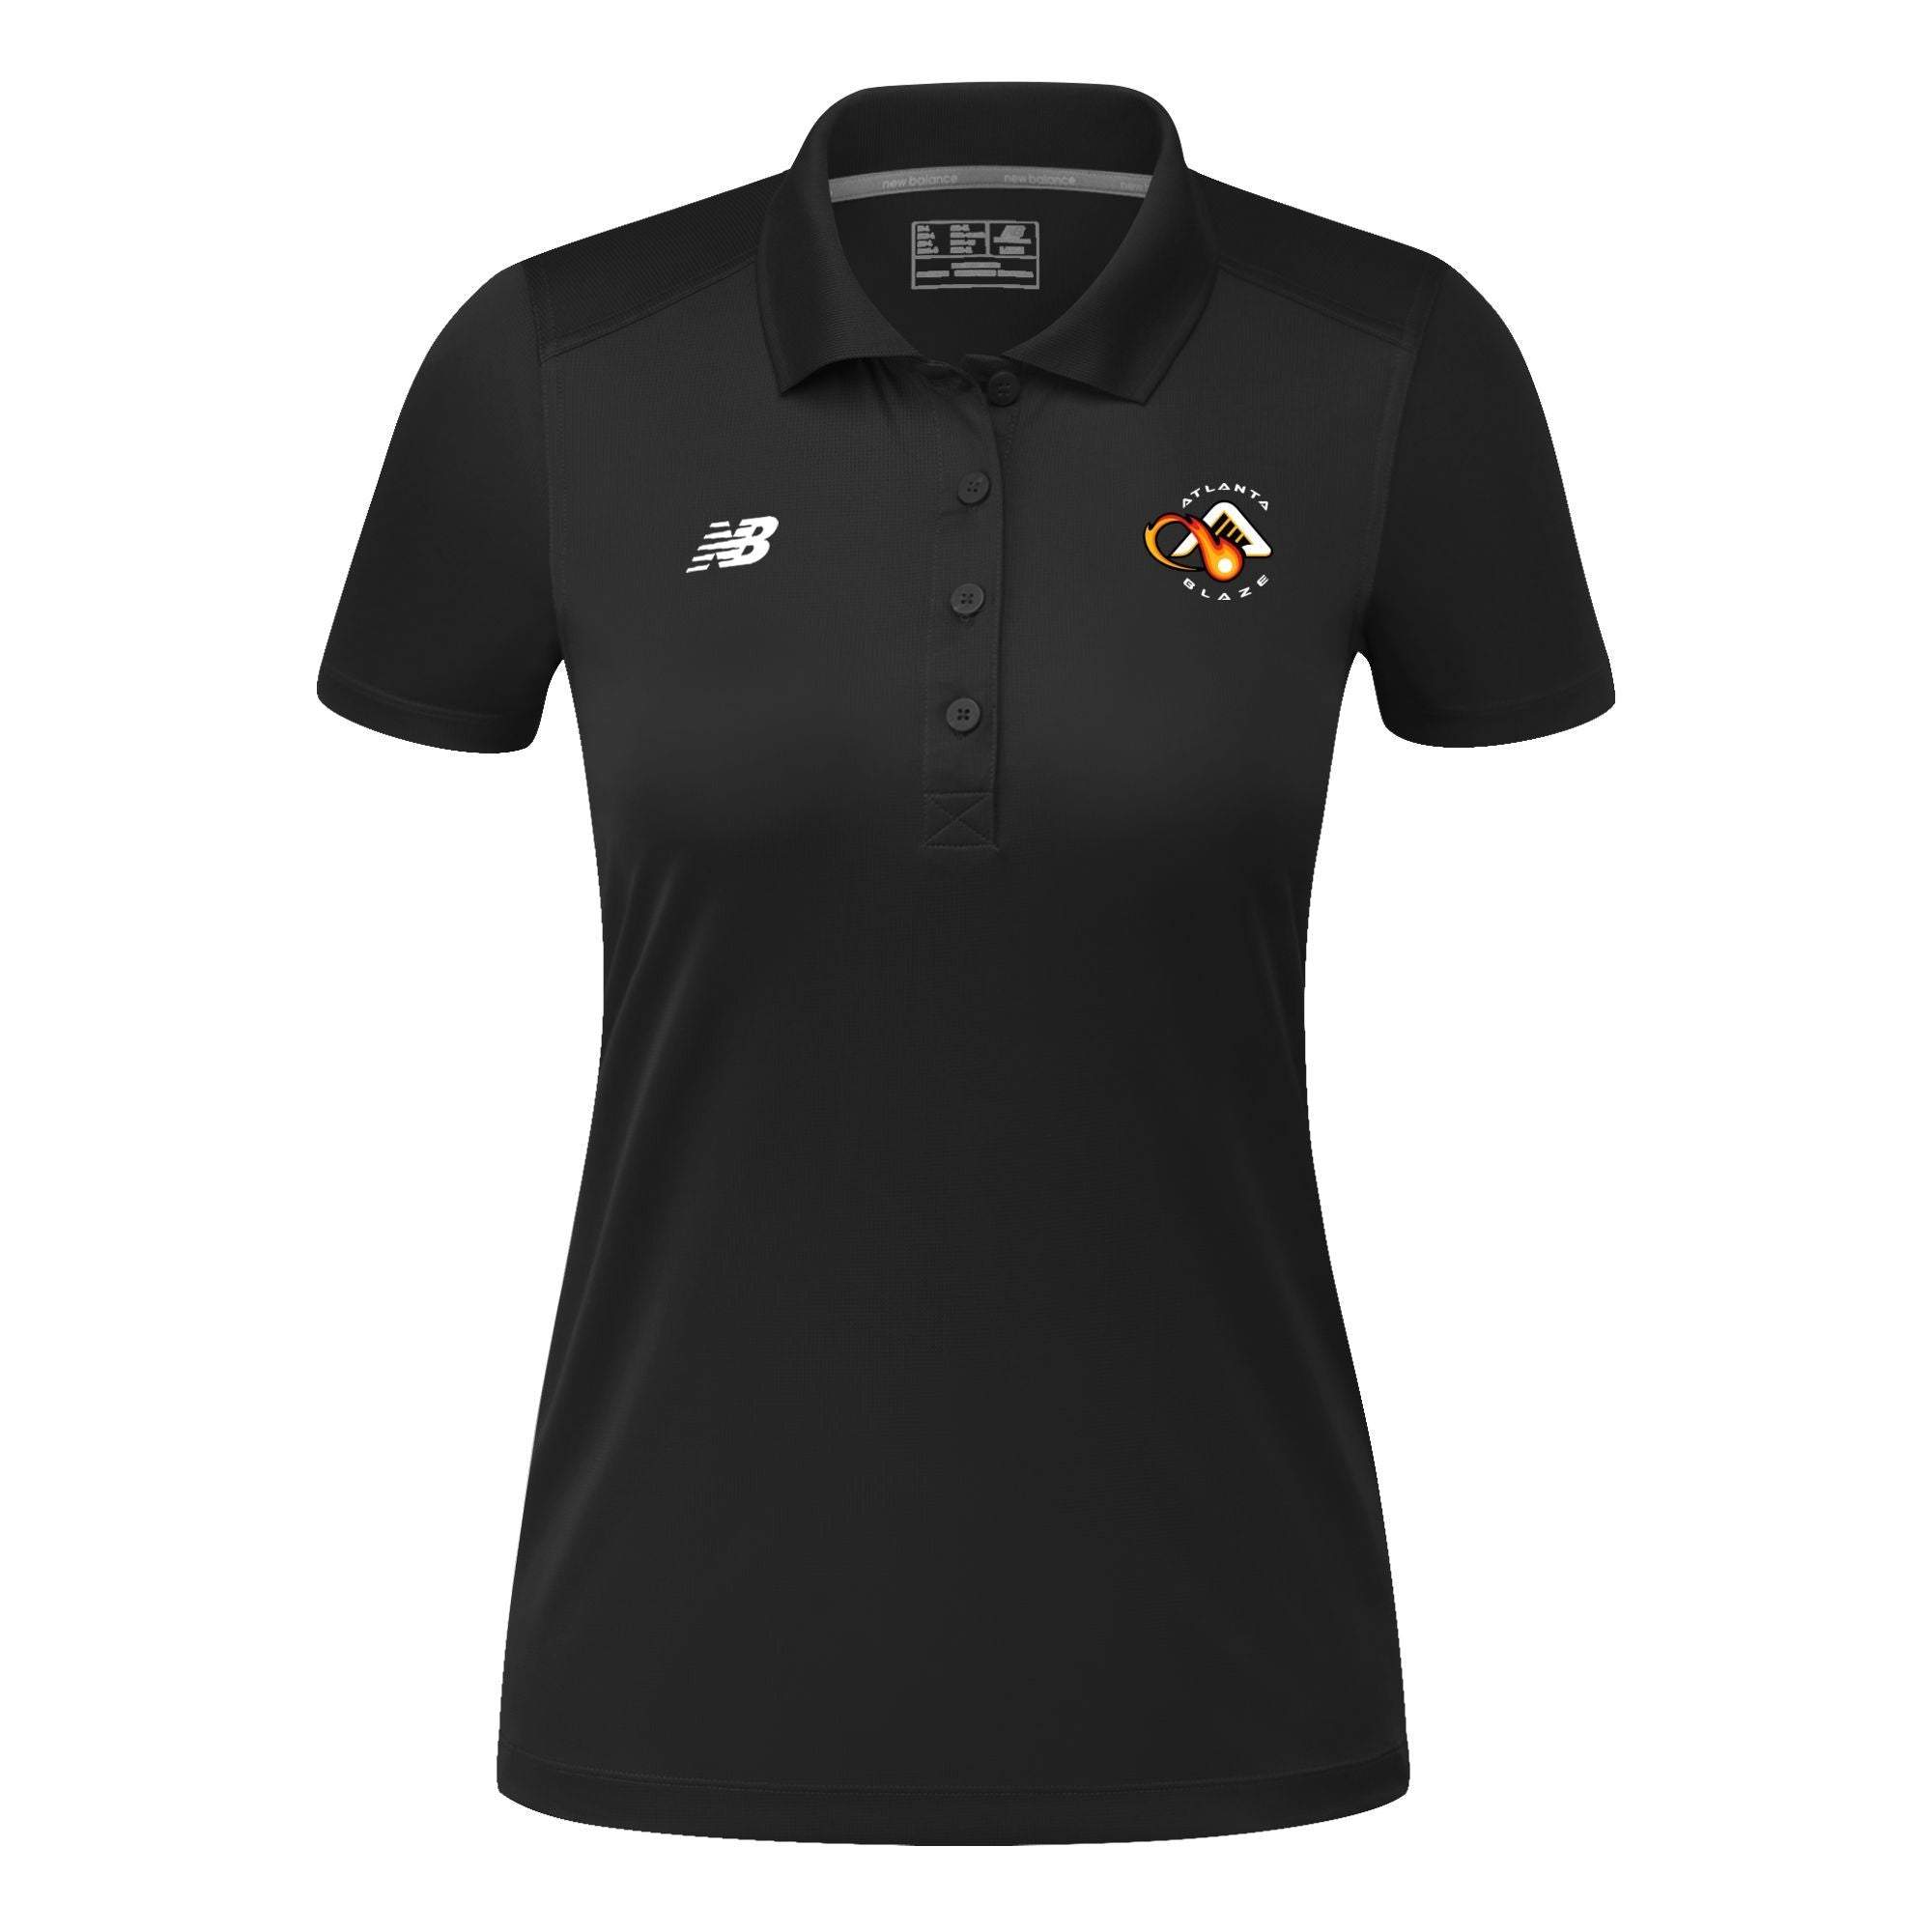 NB Women's Tech Polo